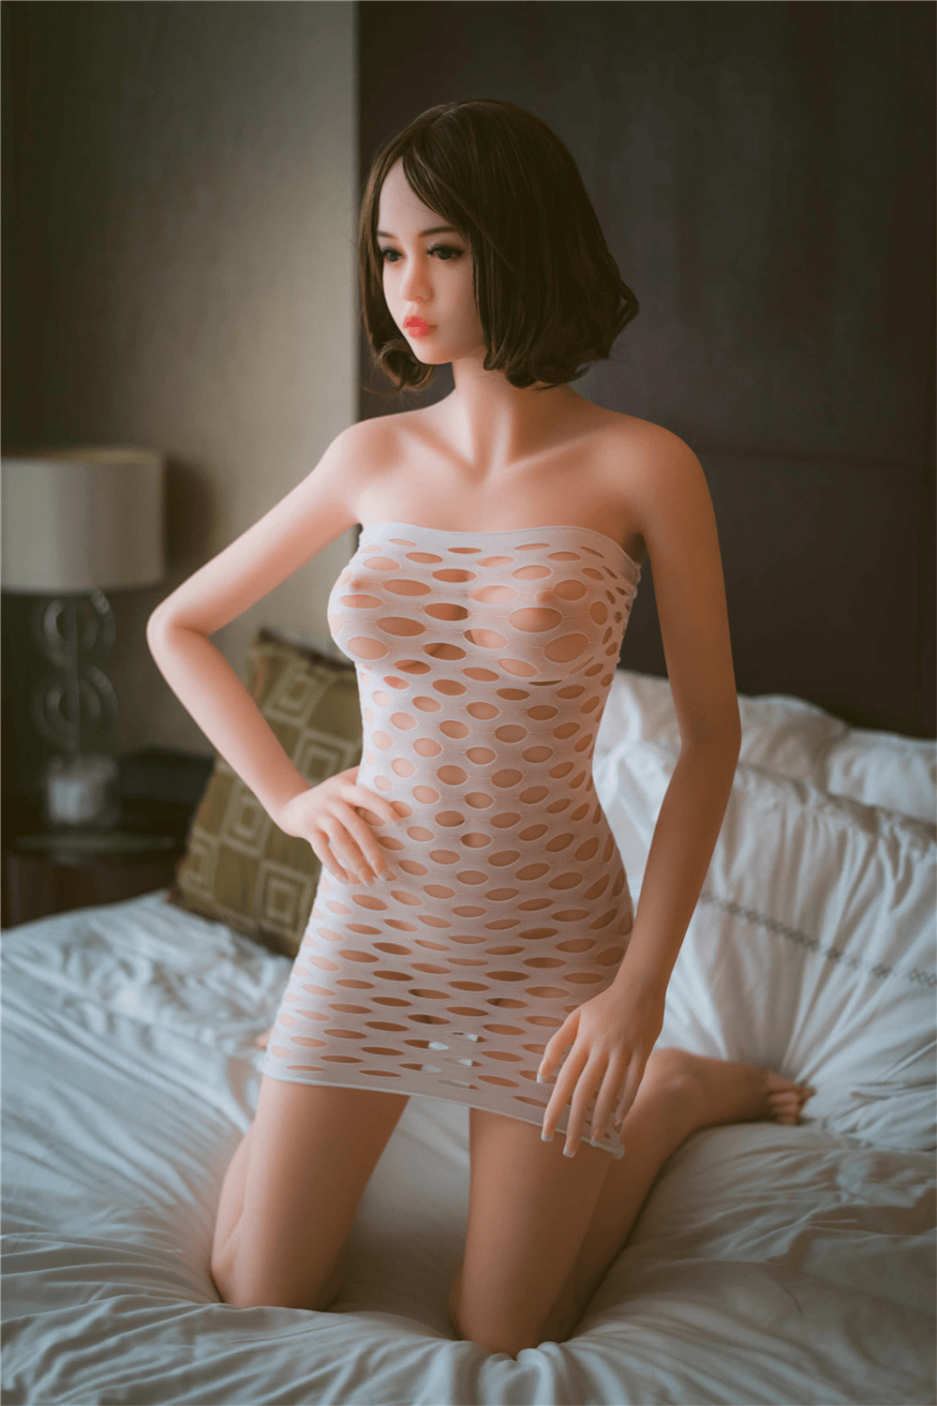 sex doll kneeling on the bed